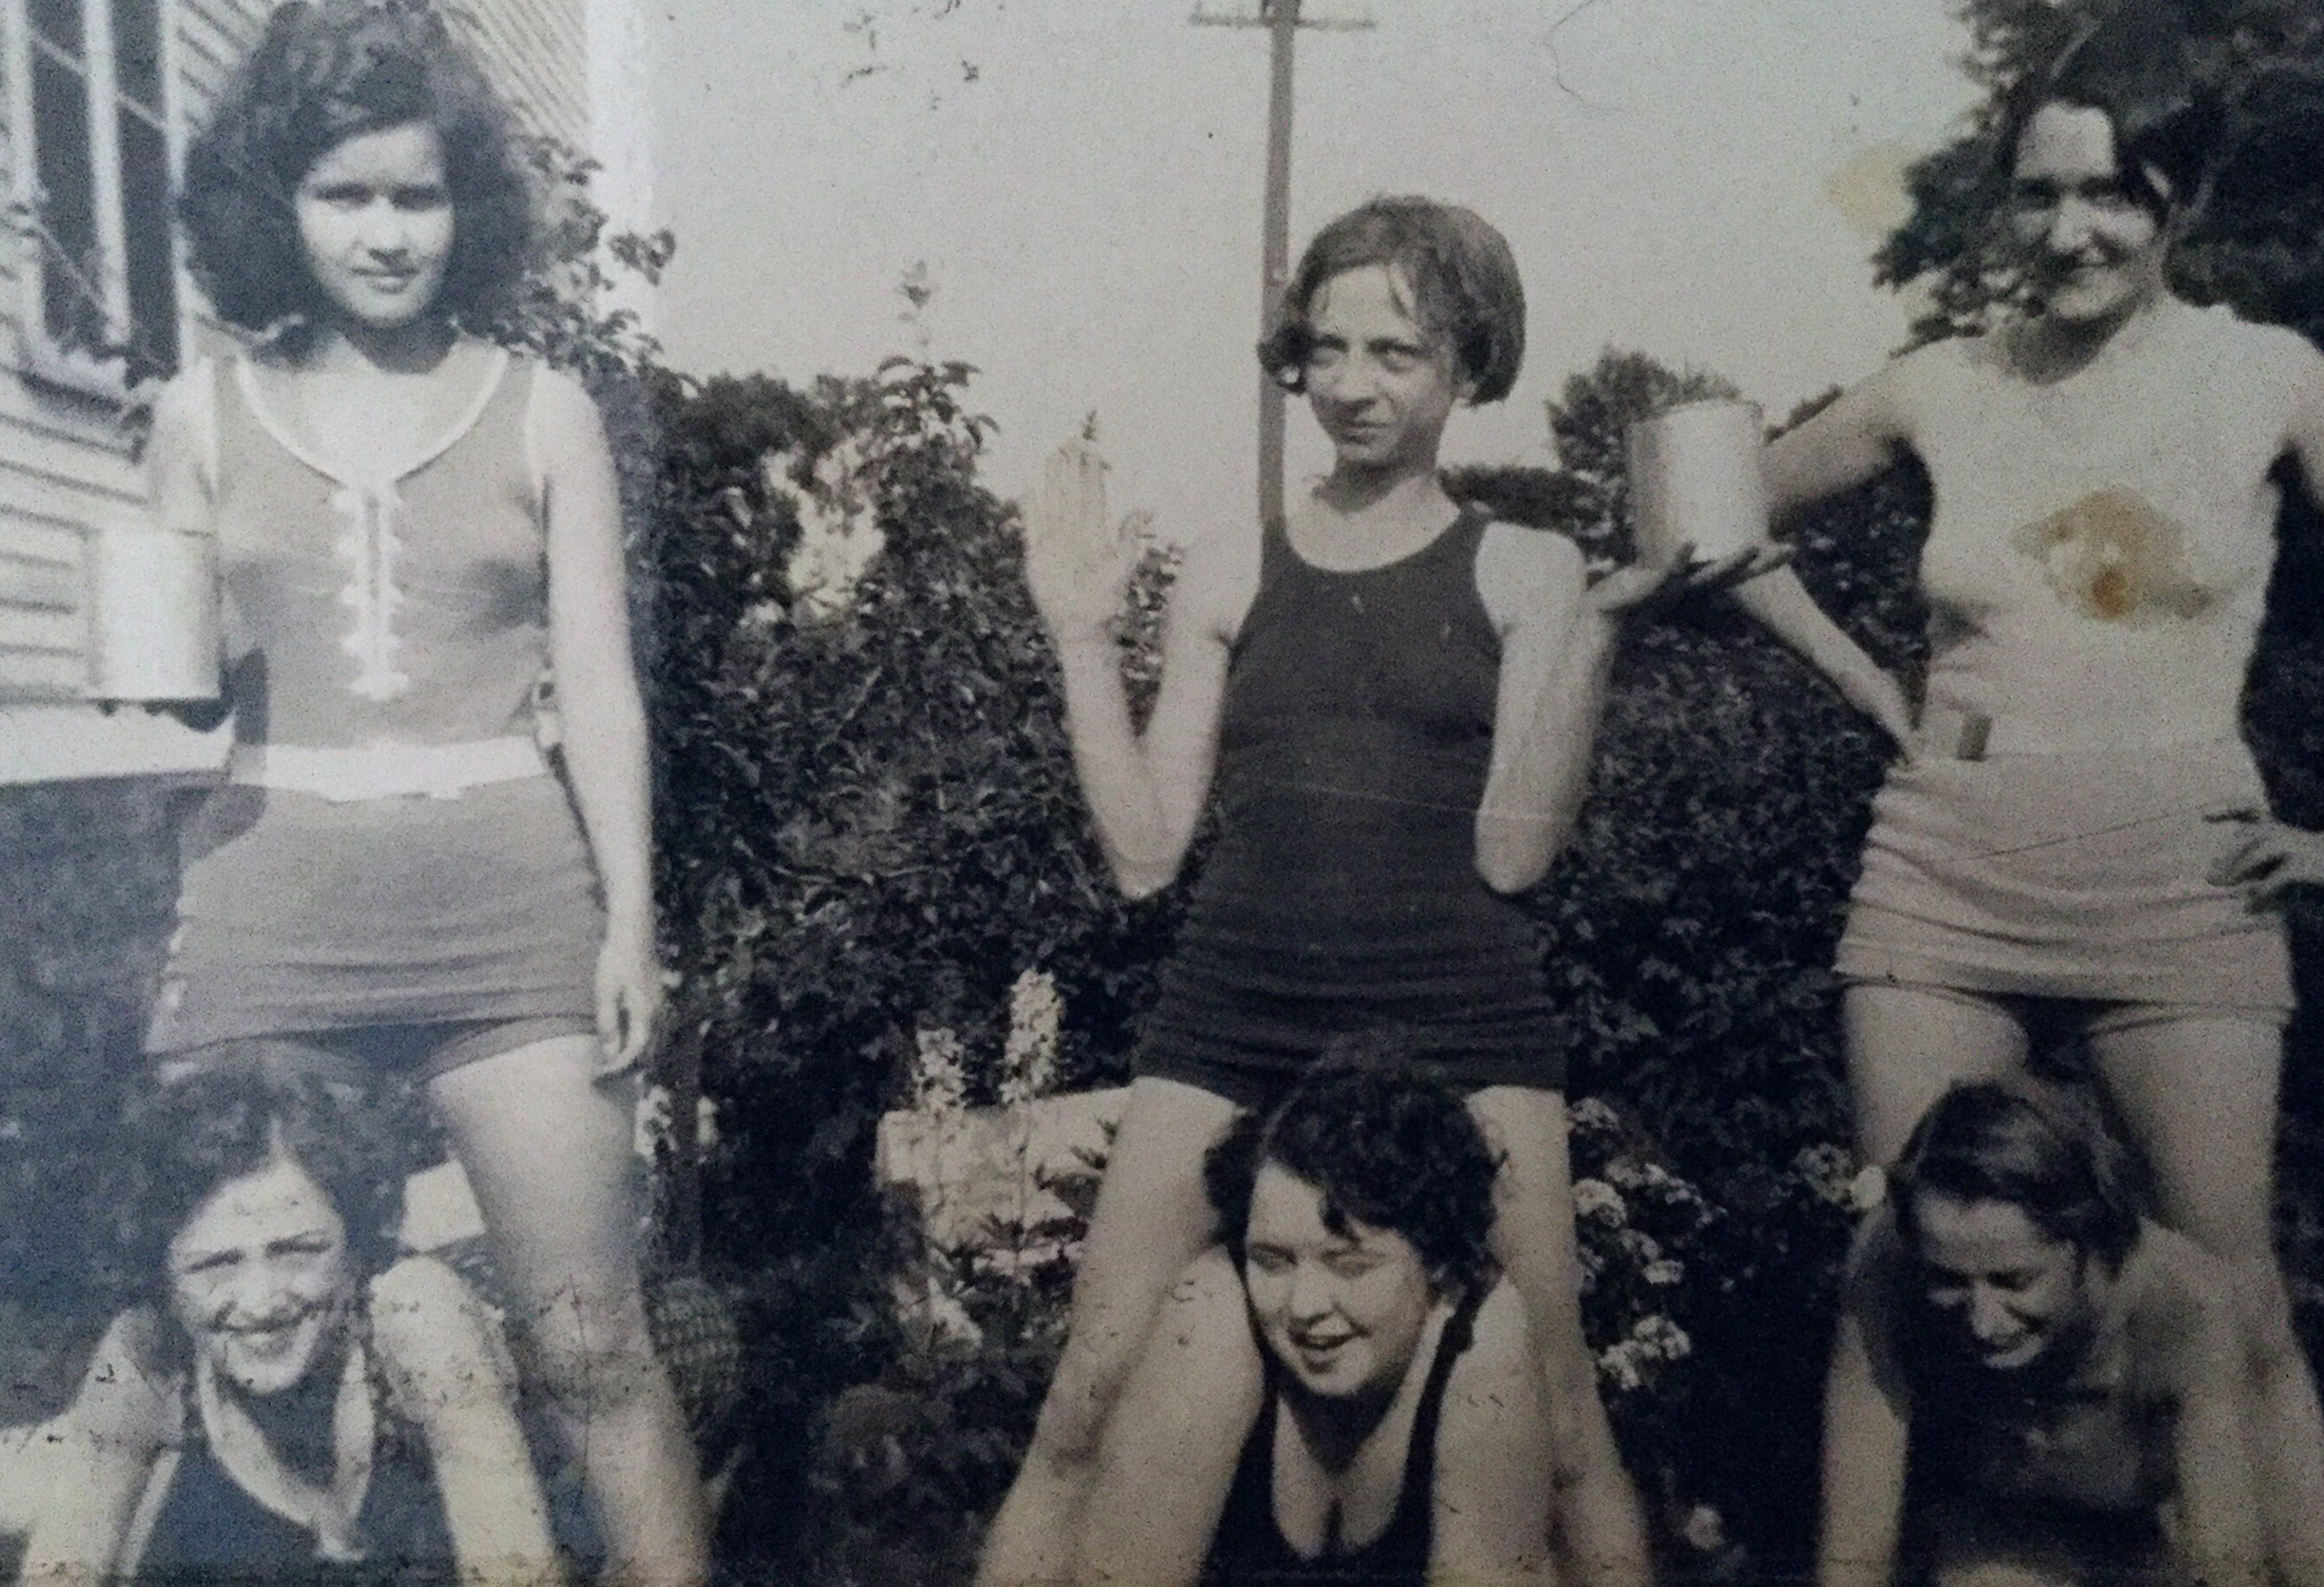 Girls having fun timeless maybe early 1920s